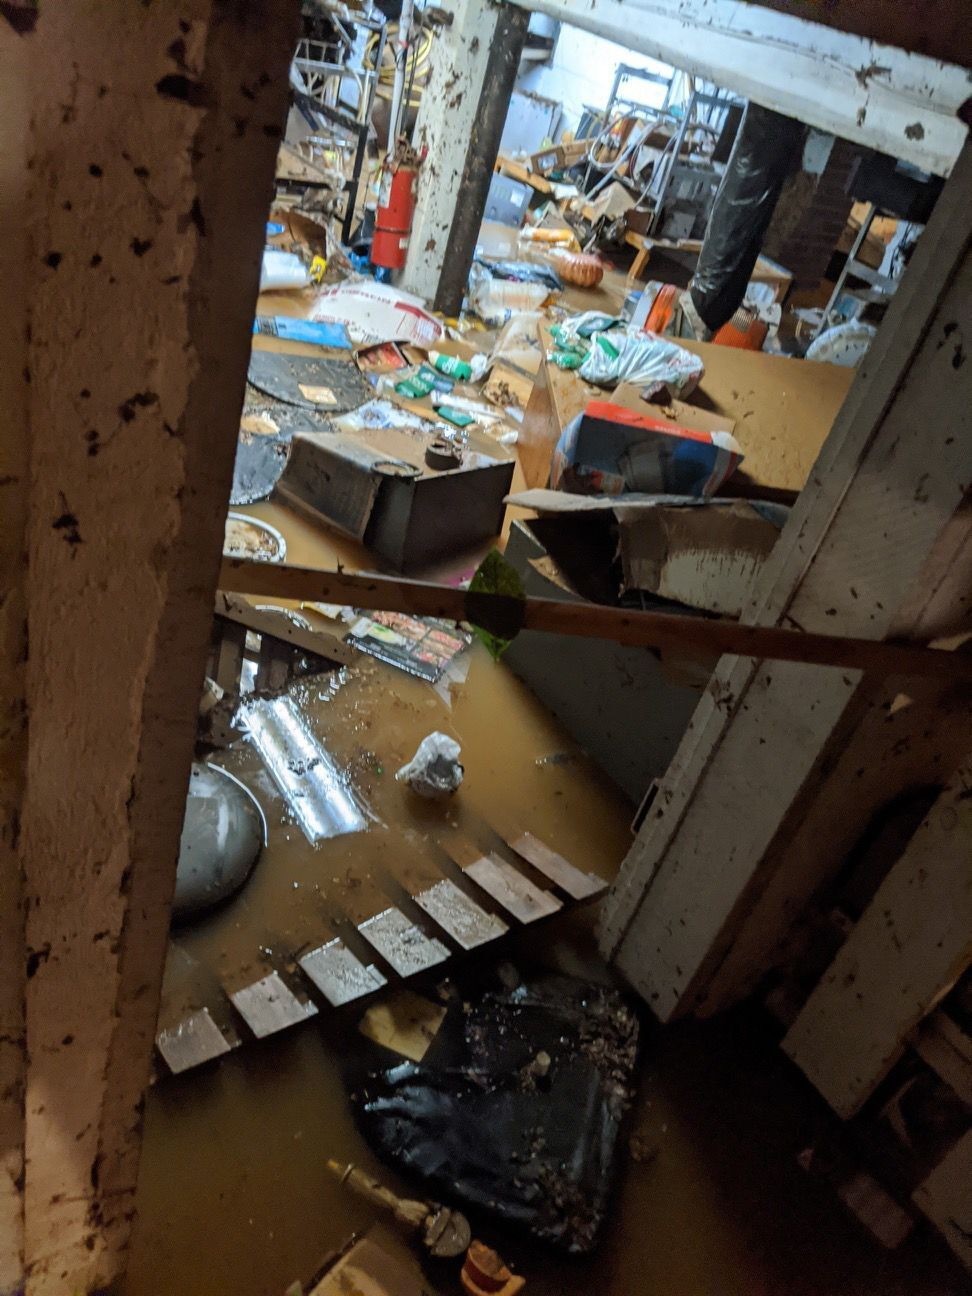 Businesses struck by flooding work to reopen